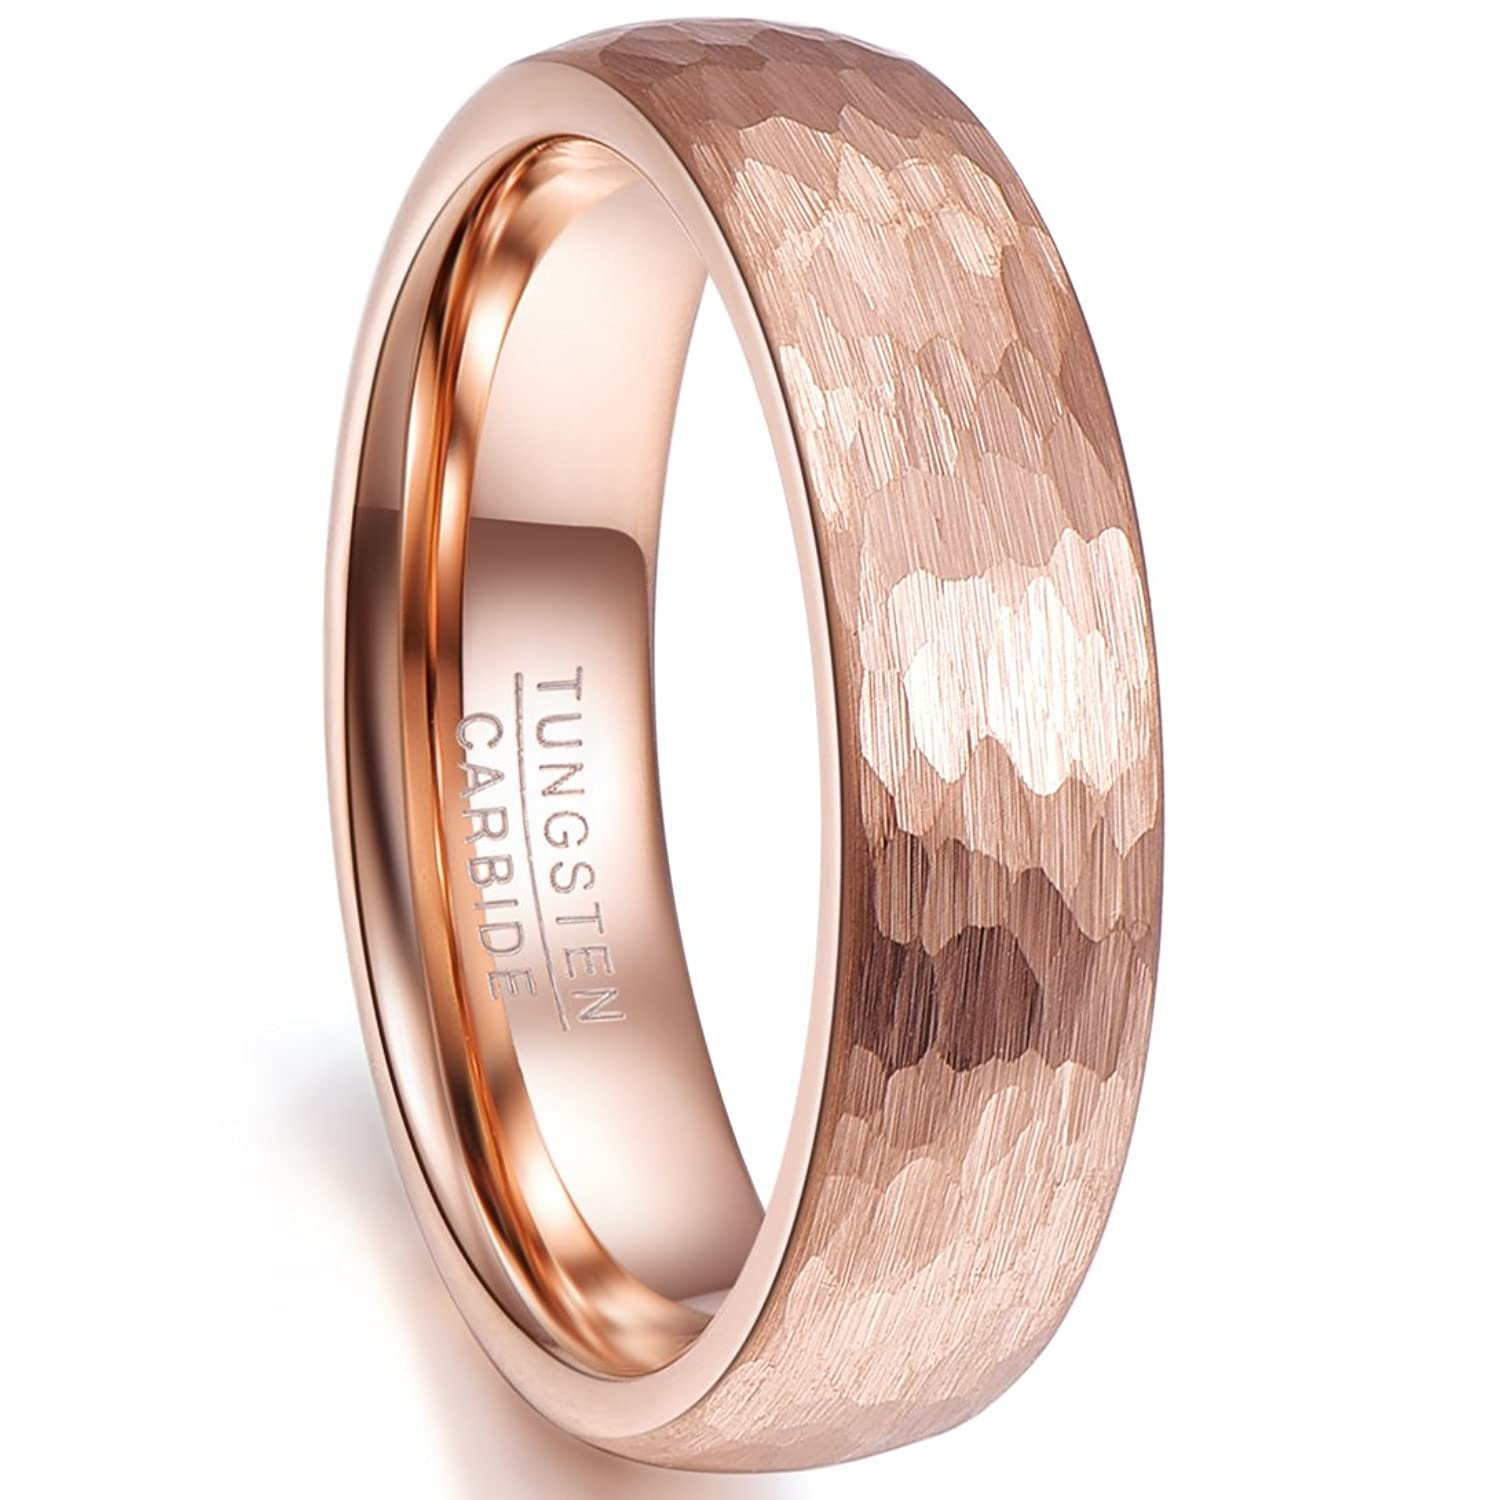 f38d14862e3dc7 Nuncad 4mm 6mm Hammered Tungsten Carbide Ring Domed Brushed Finish Rose  Gold Plated Wedding Band for Men Women Size 5-10